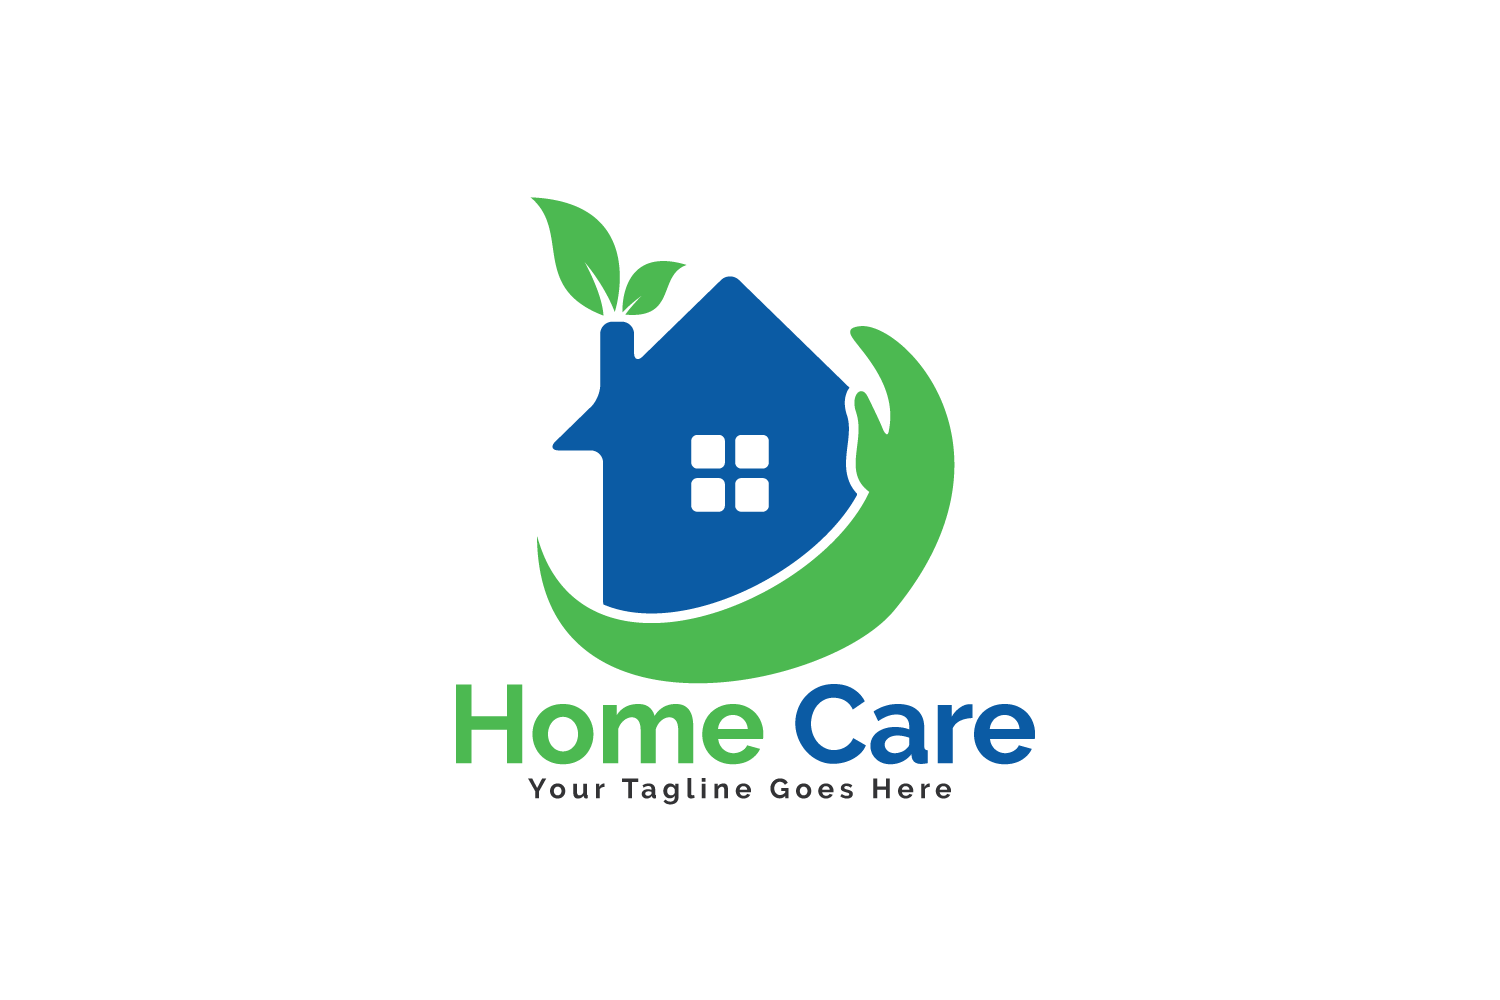 Home Care Logo Design. House With Hand Vector Design.